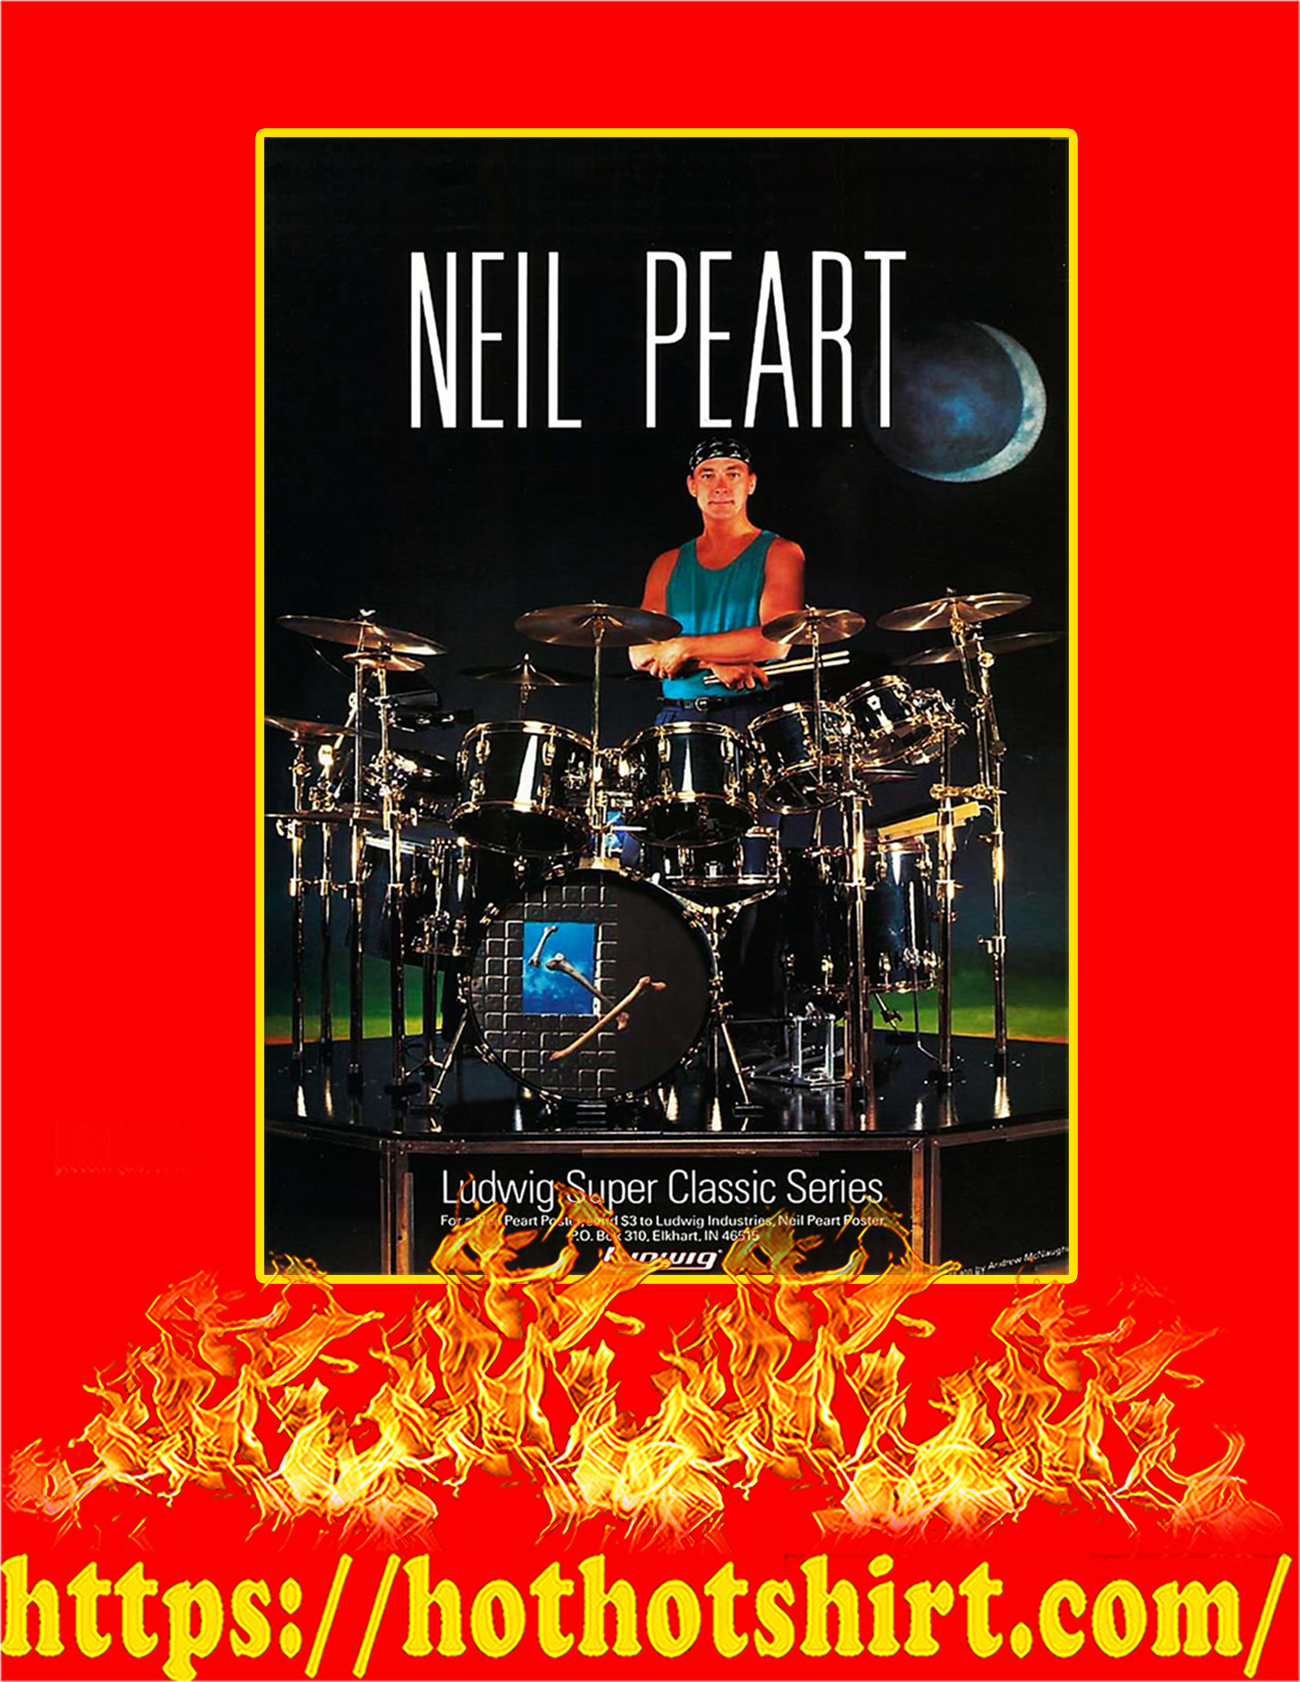 Neil Peart Ludwig Super Classic Series Poster - A2